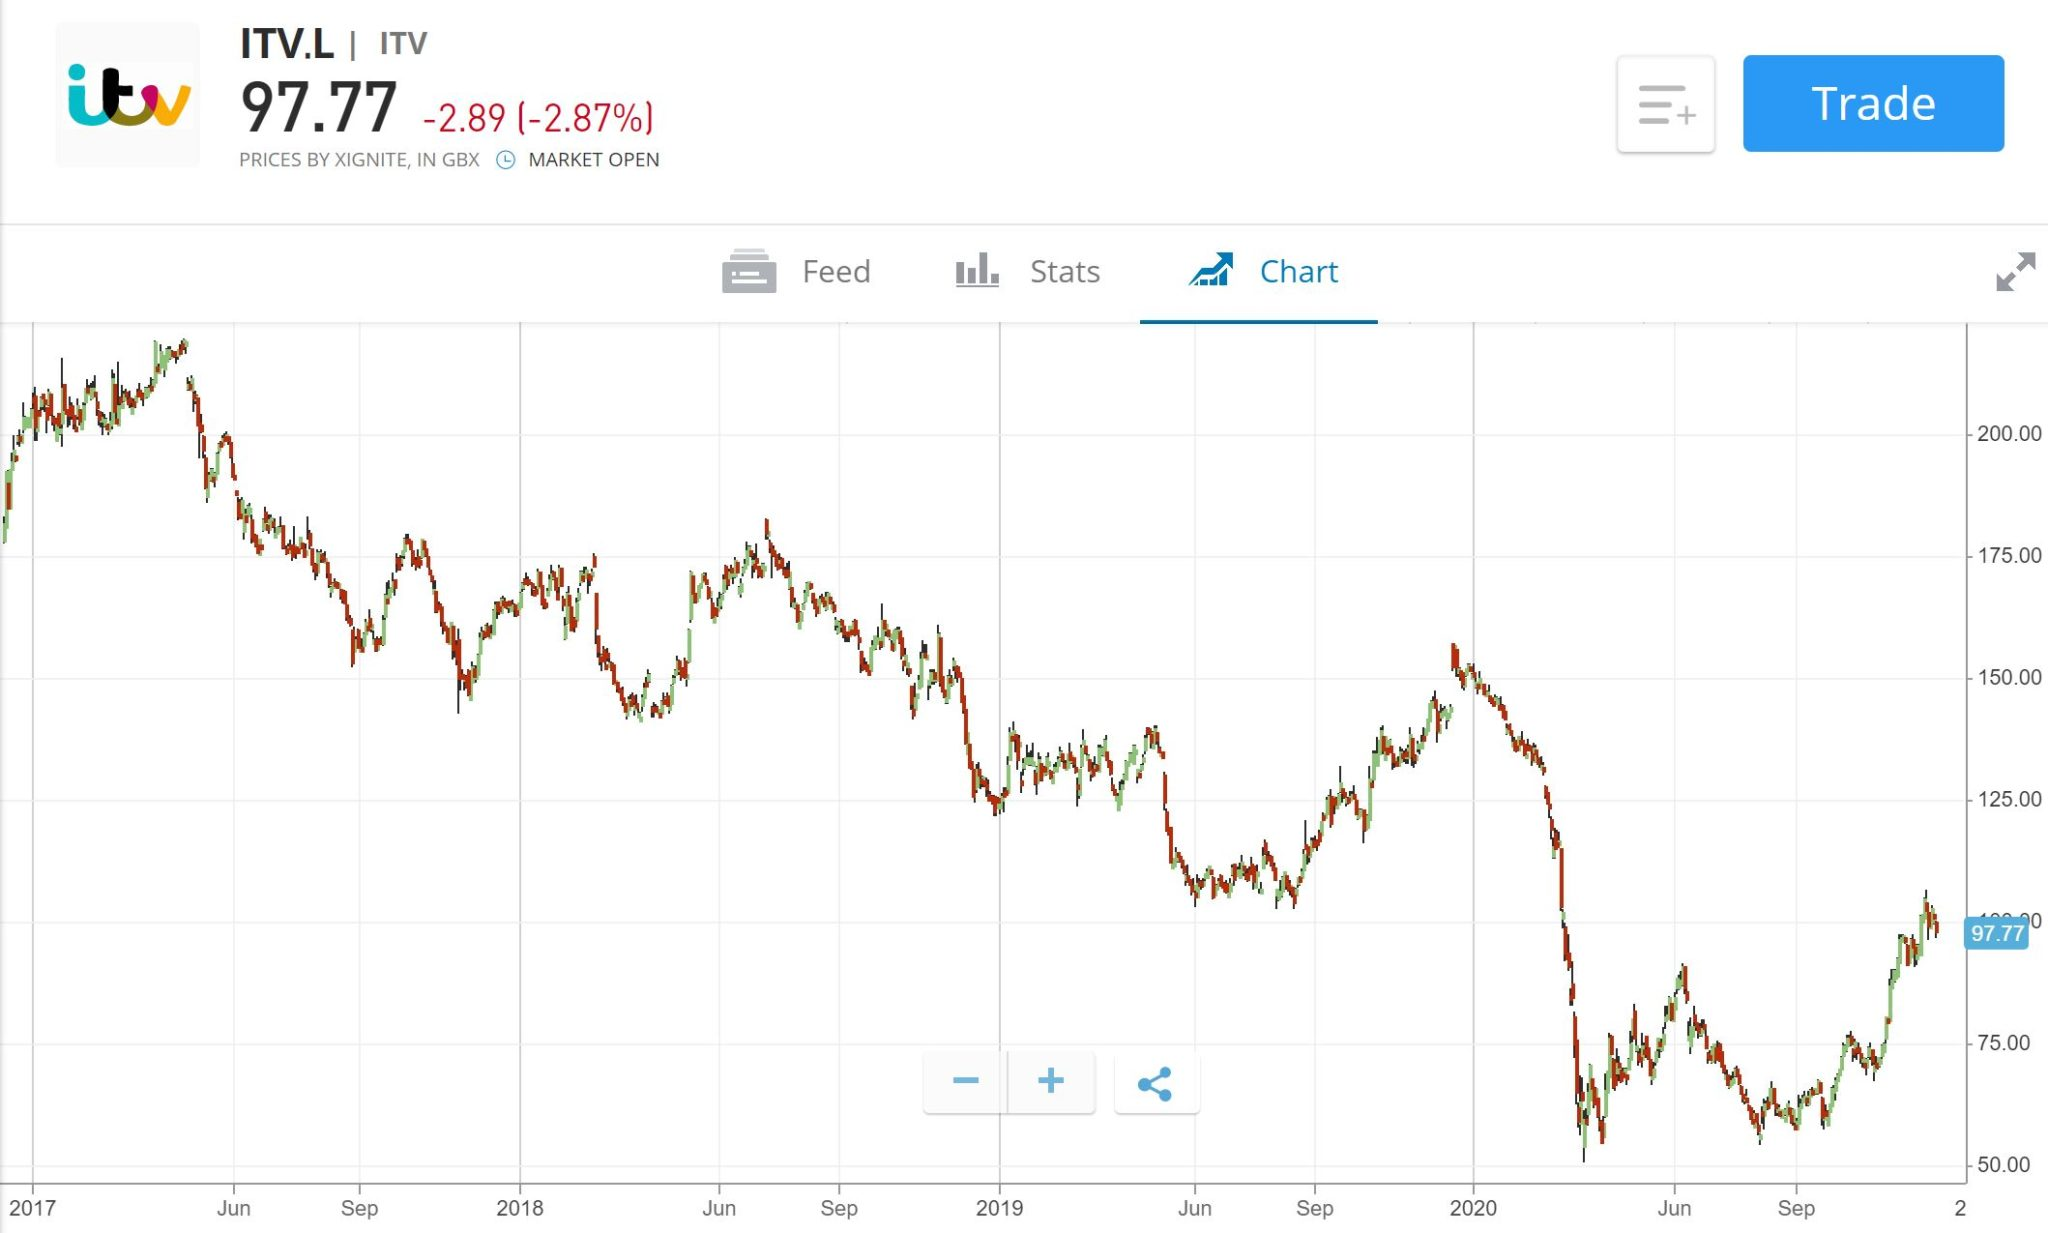 ITV Share Price eToro